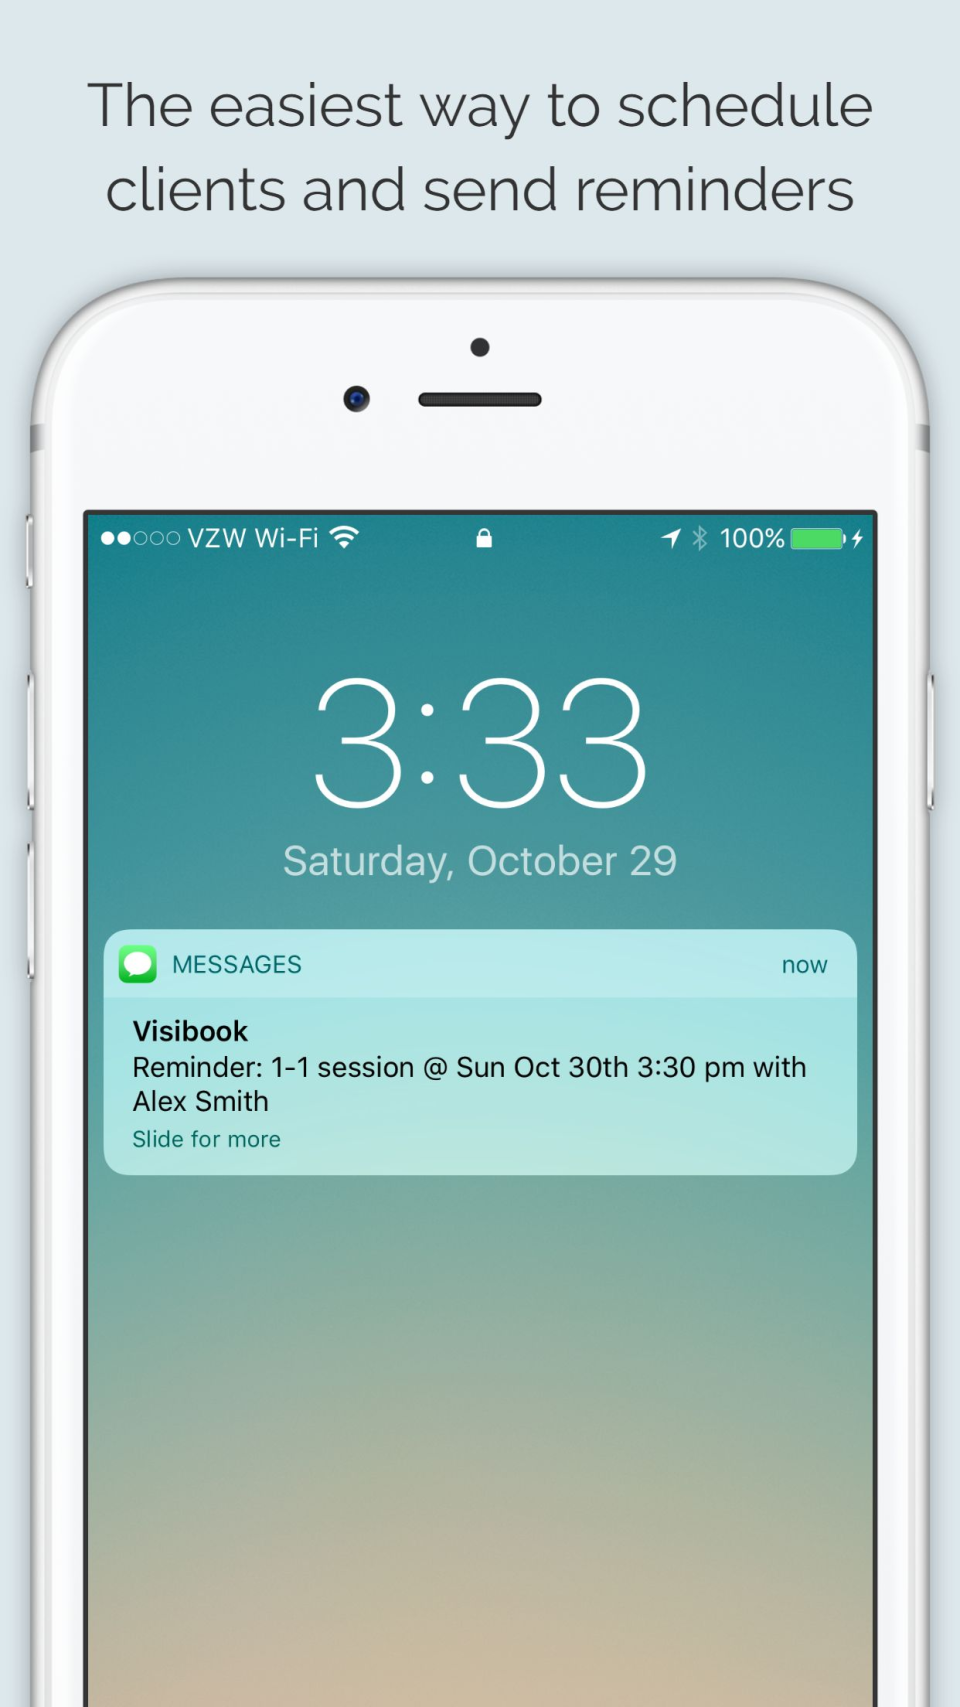 Schedule clients and send SMS text reminders